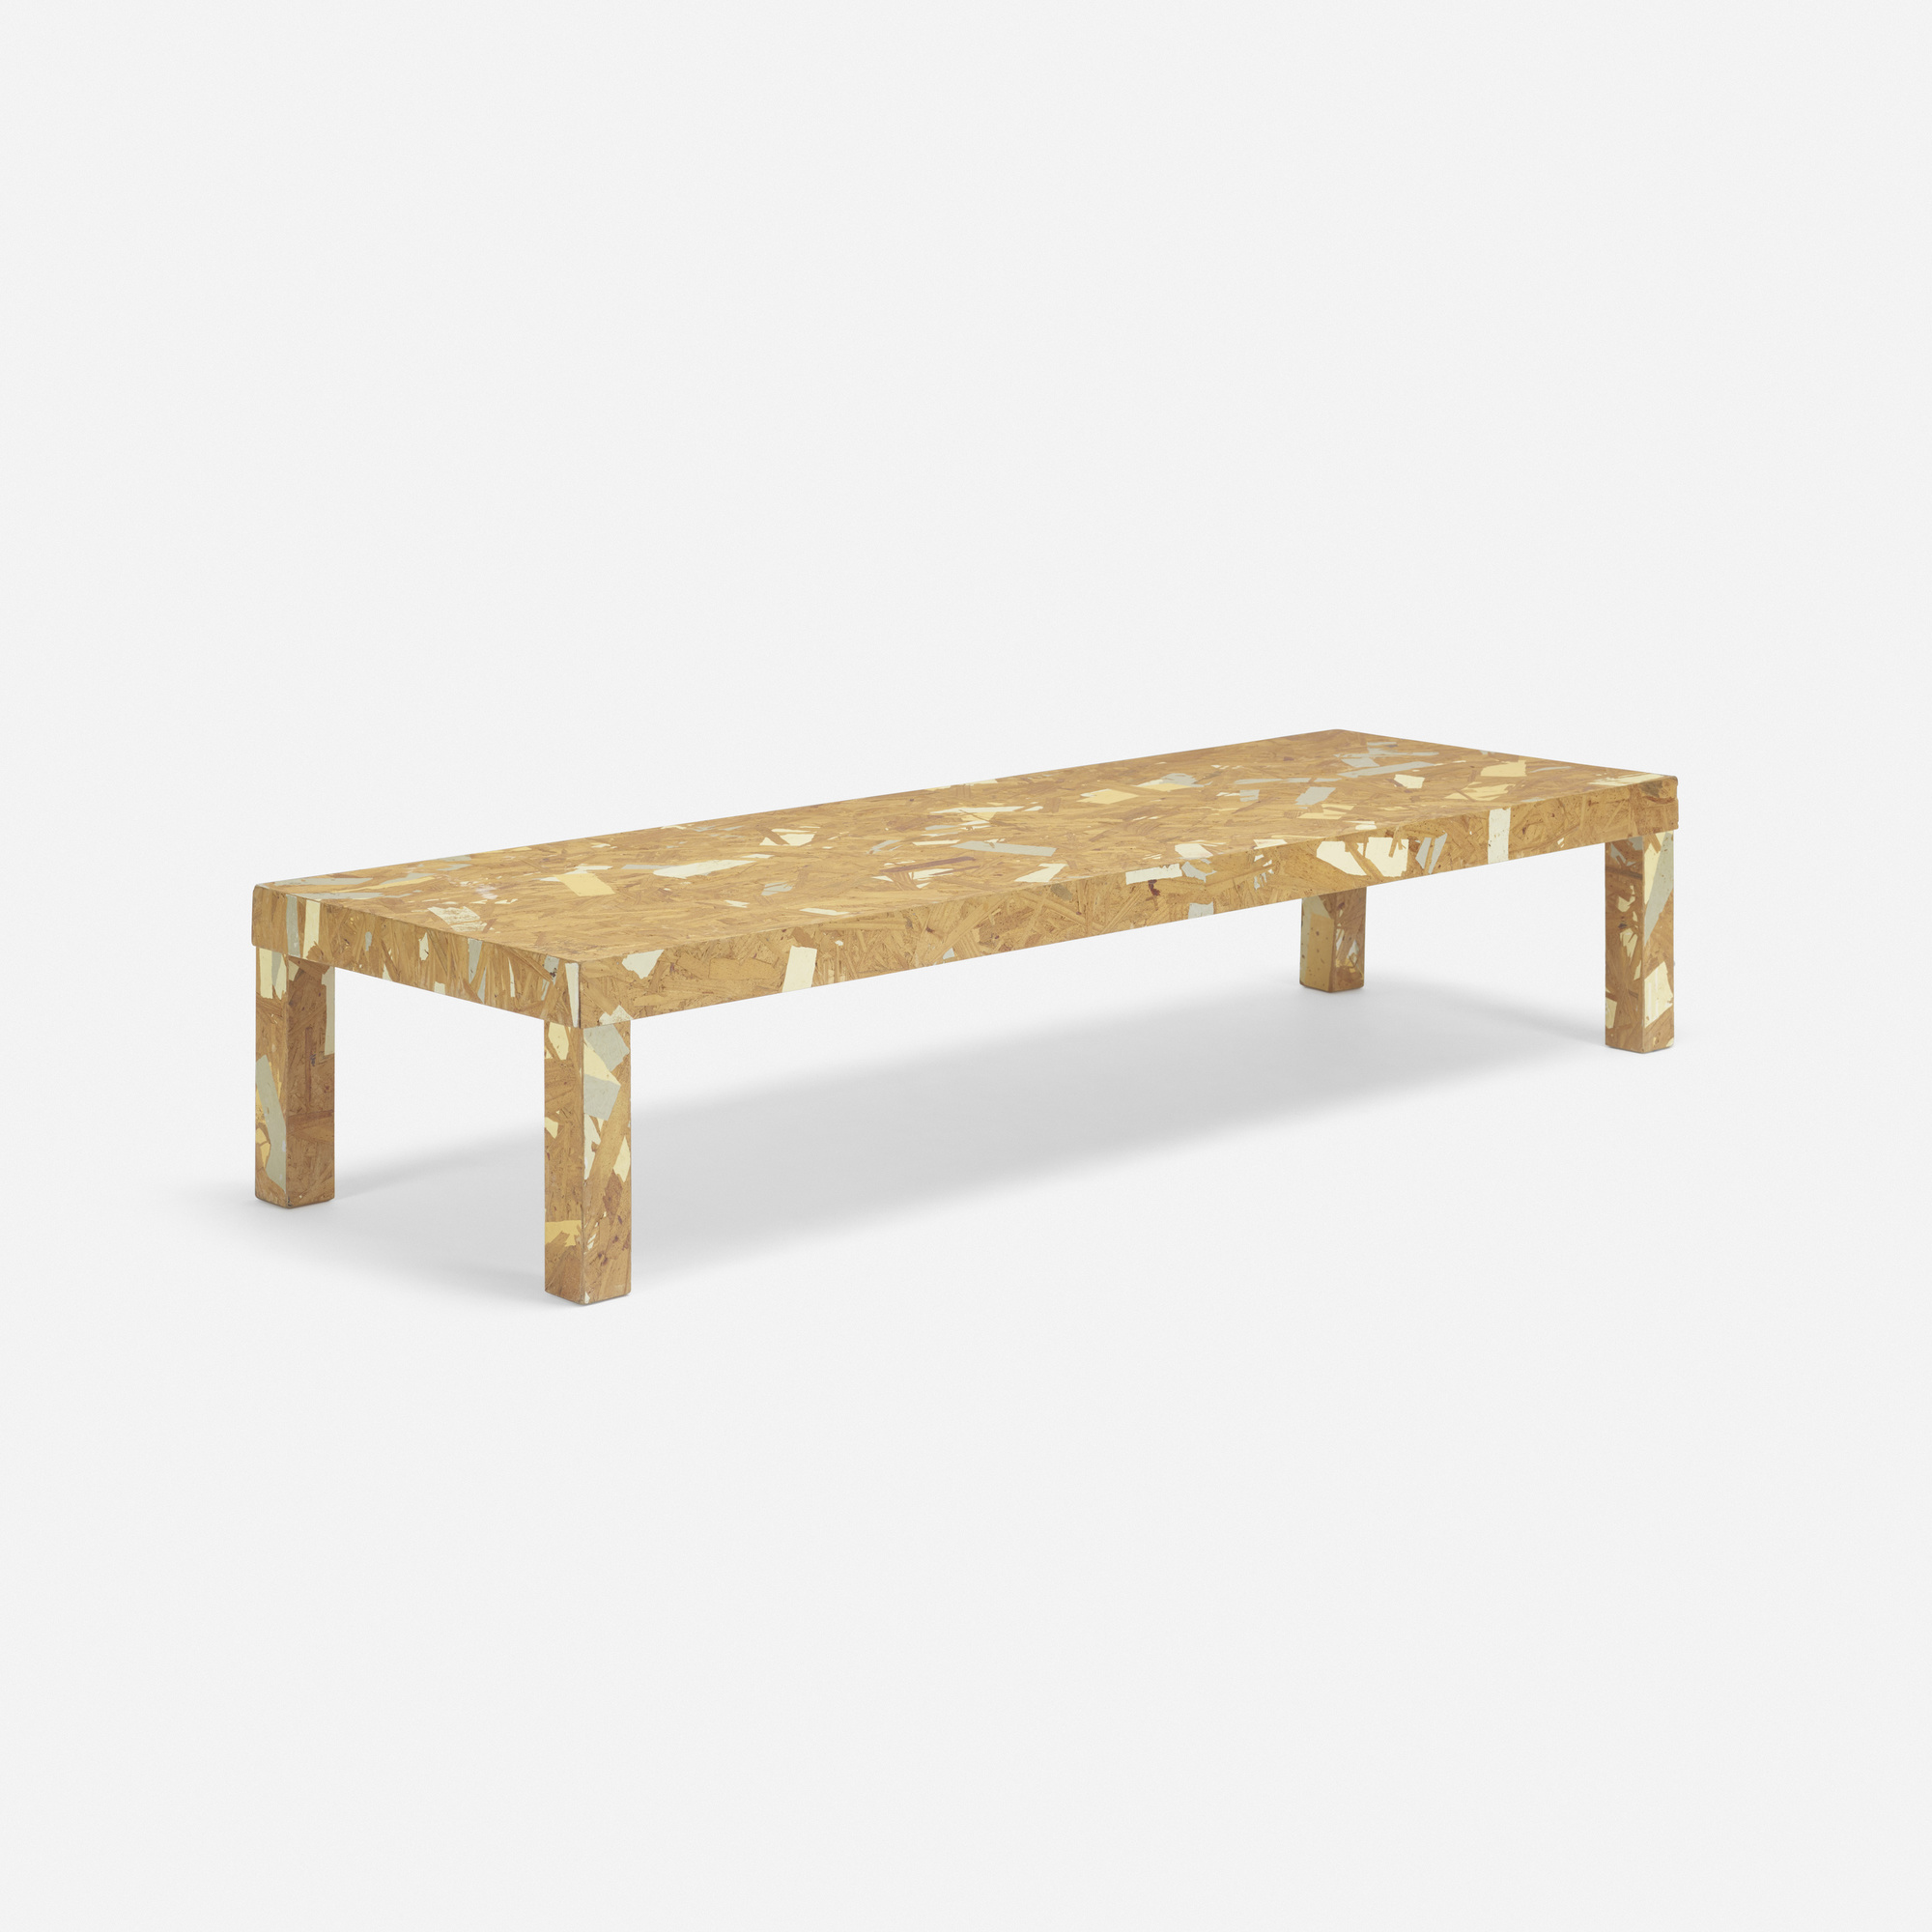 419: Fernando and Humberto Campana / Celia coffee table (1 of 3)